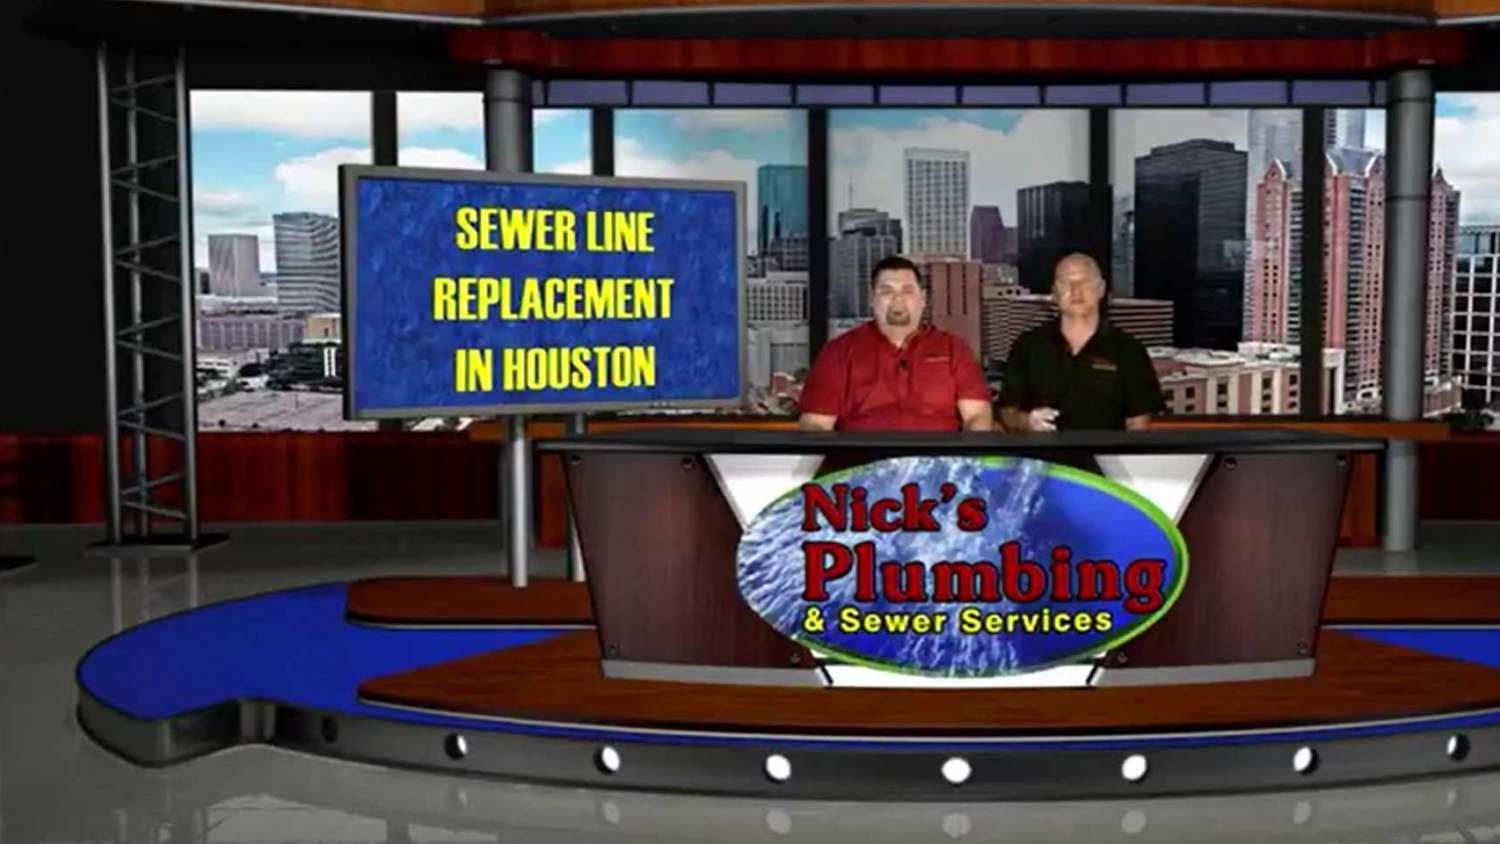 Two Experts Sitting at a News Desk in Houston Discuss Sewer Line Replacement